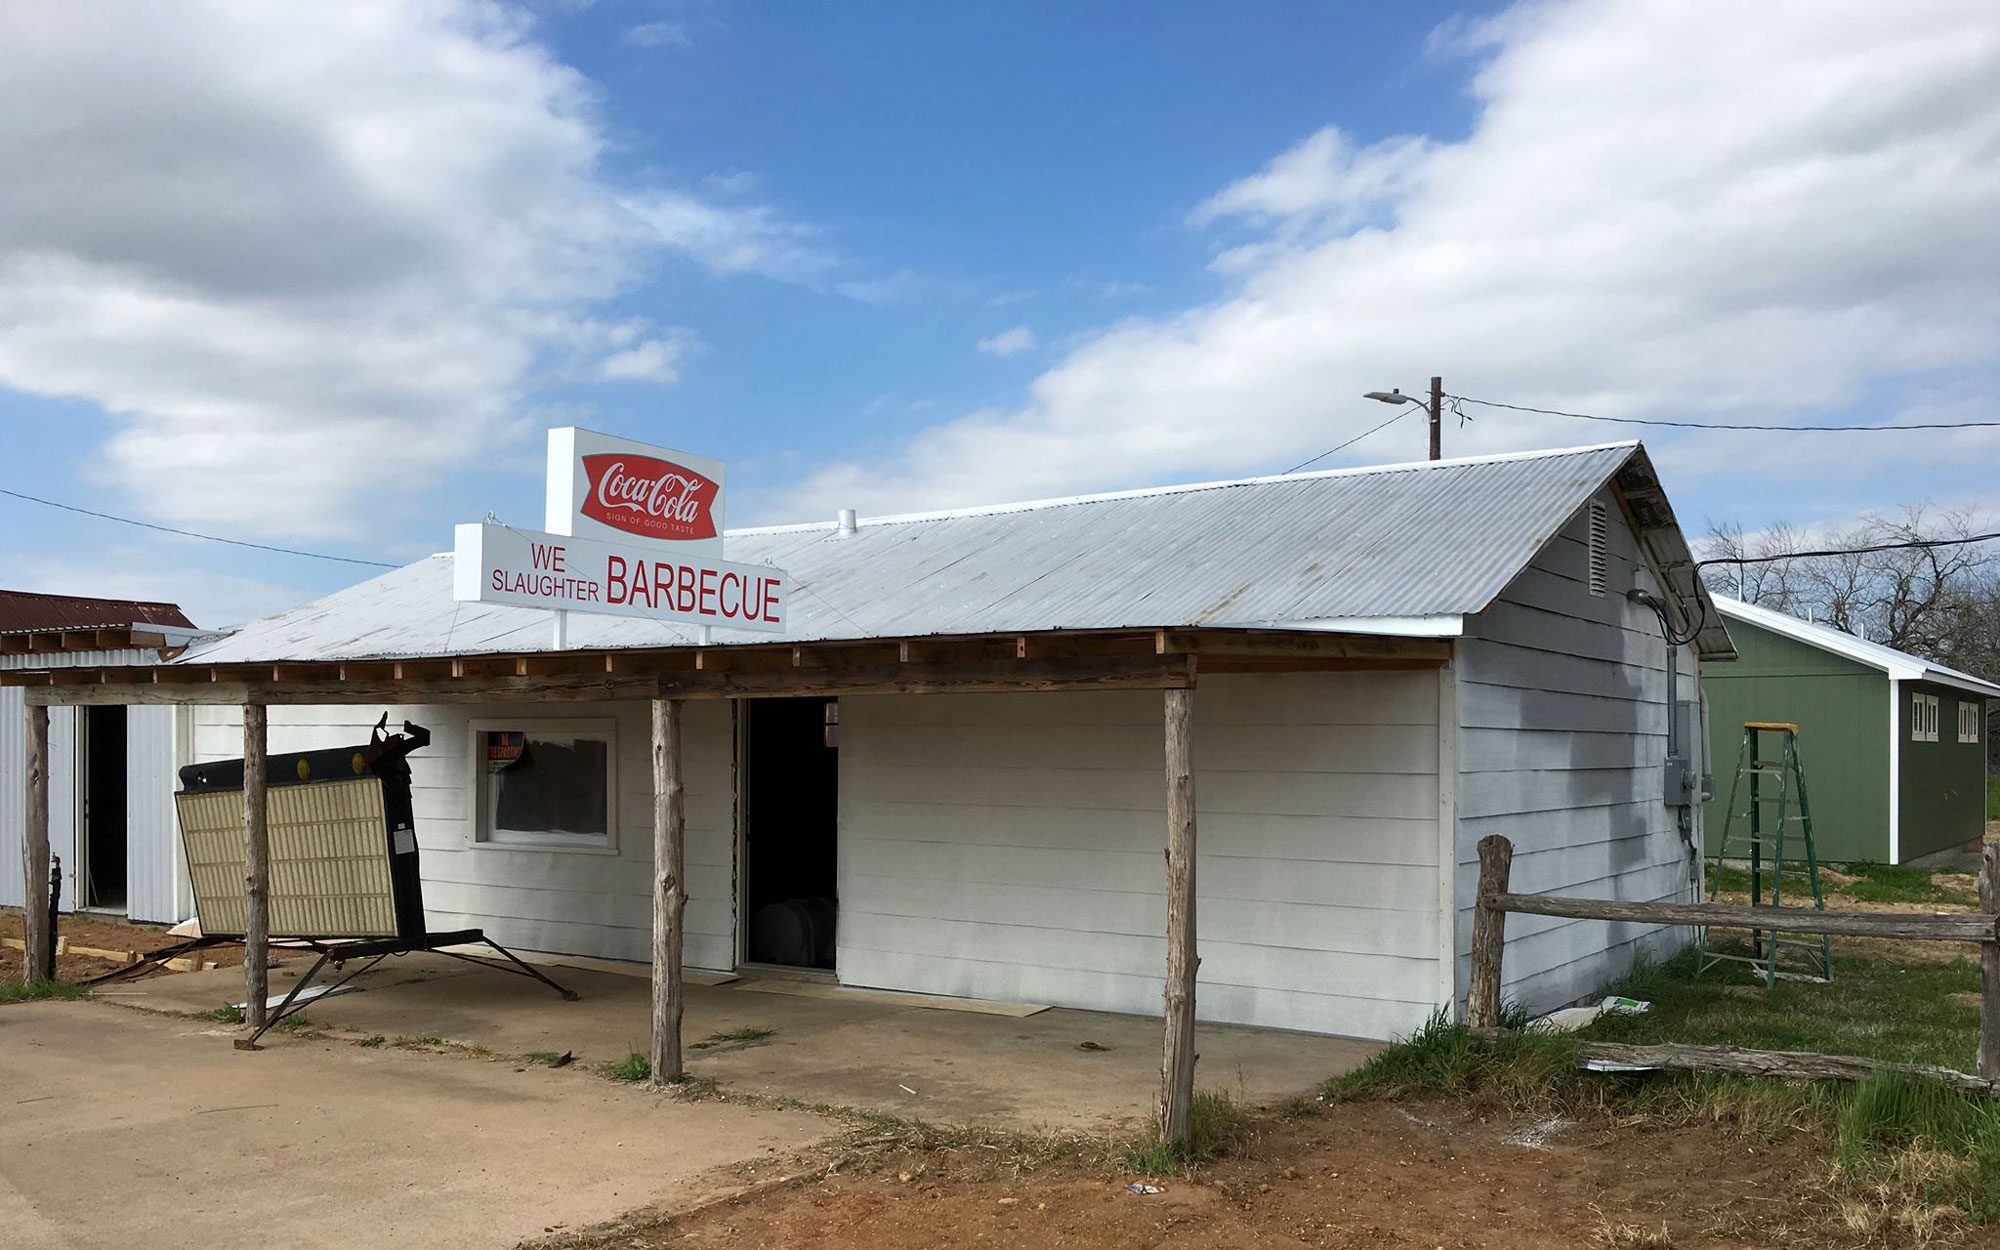 Gas Station From Texas Chainsaw Massacre Being Converted to a Horror-Themed Resort